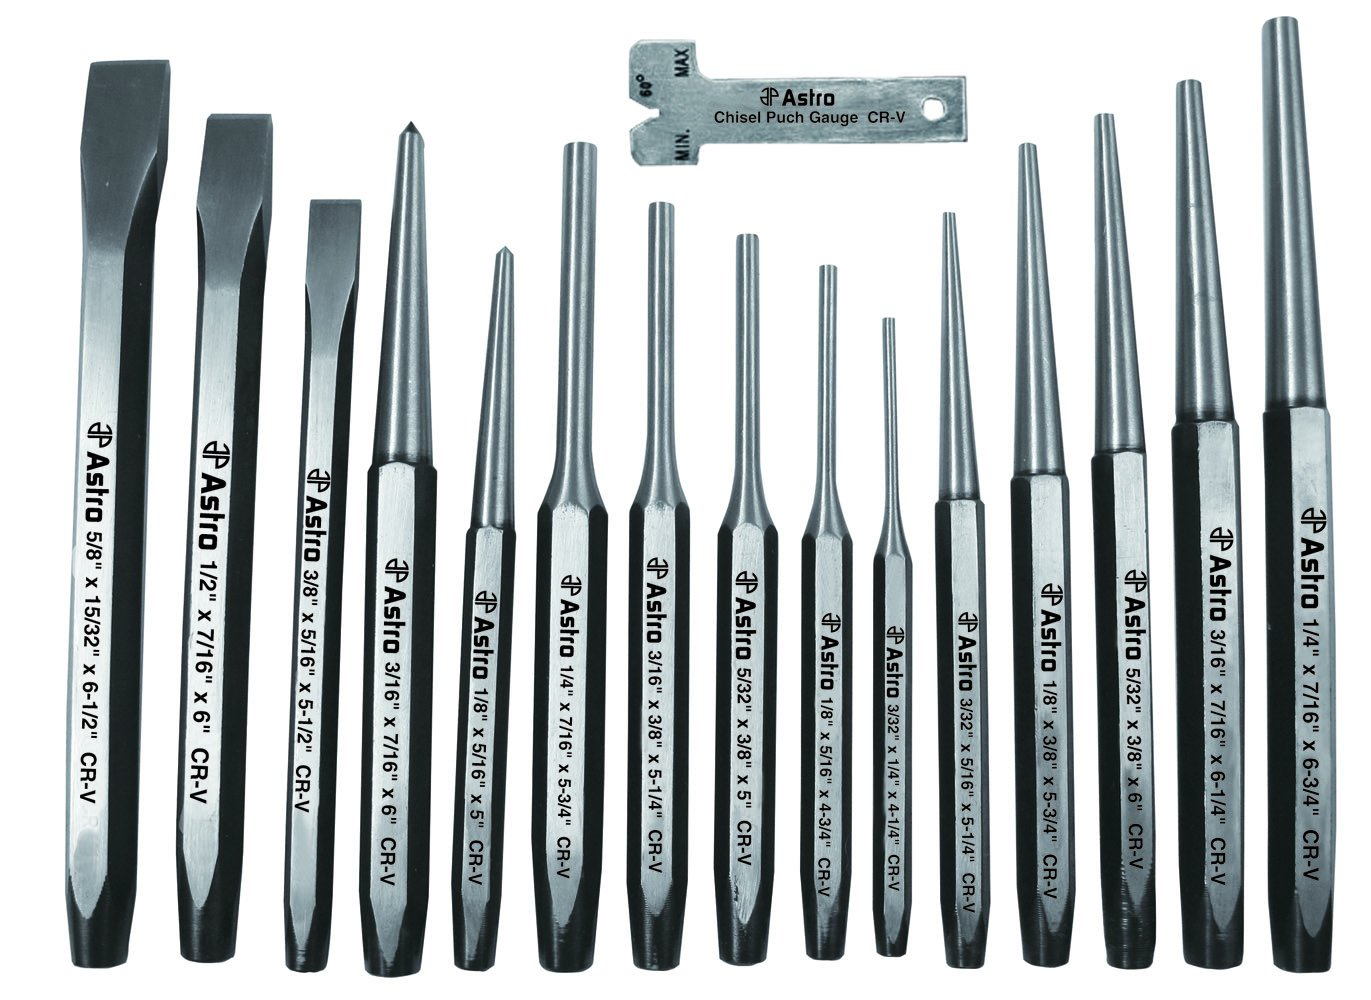 Astro 1600 16-Piece Punch and Chisel Set by Astro Pneumatic Tool